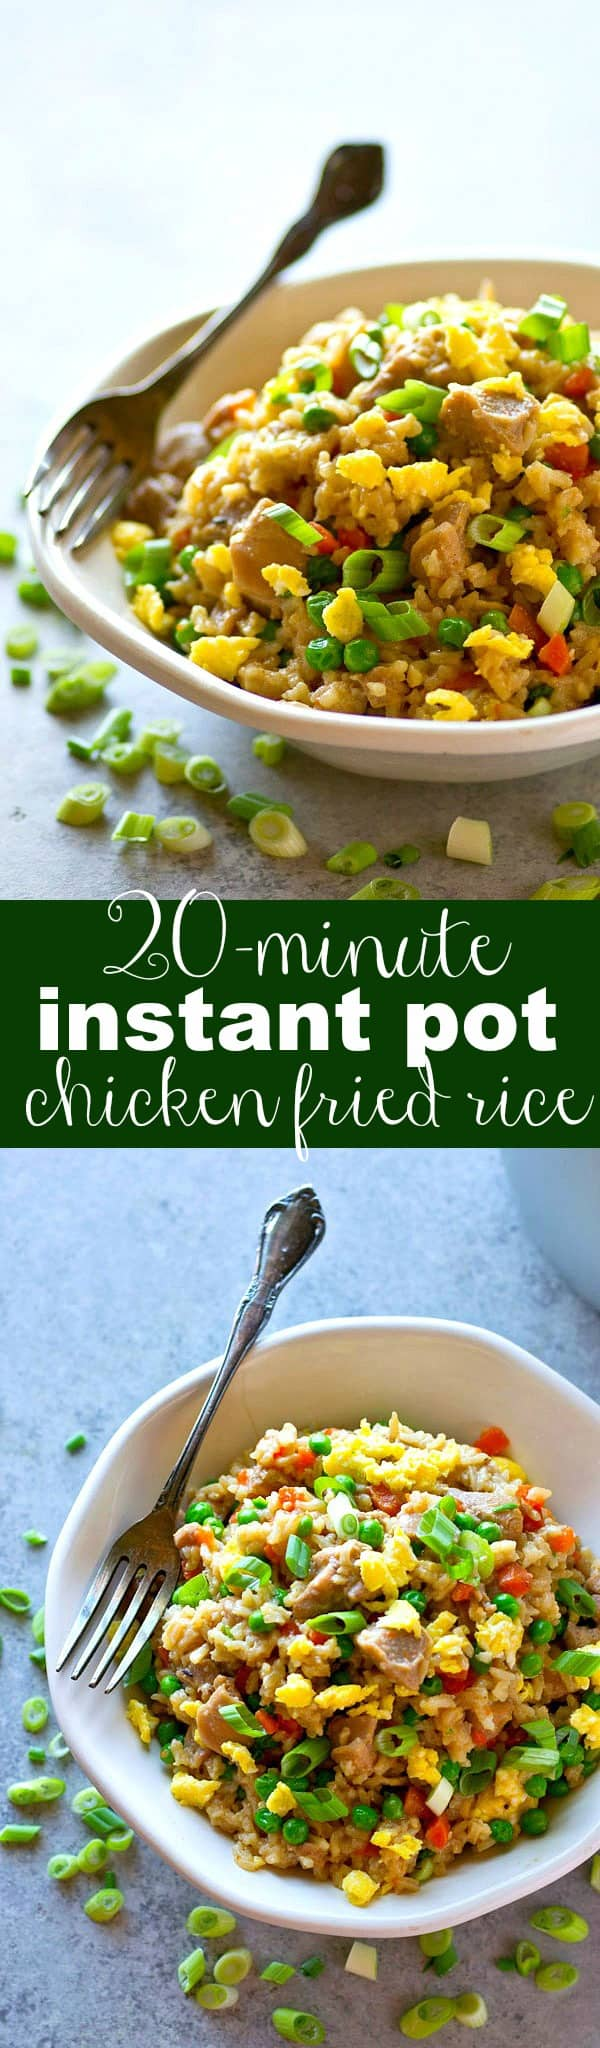 Classic, restaurant-style chicken fried rice made in only TWENTY minutes entirely in the instant pot! This one will quickly become a dinner staple.